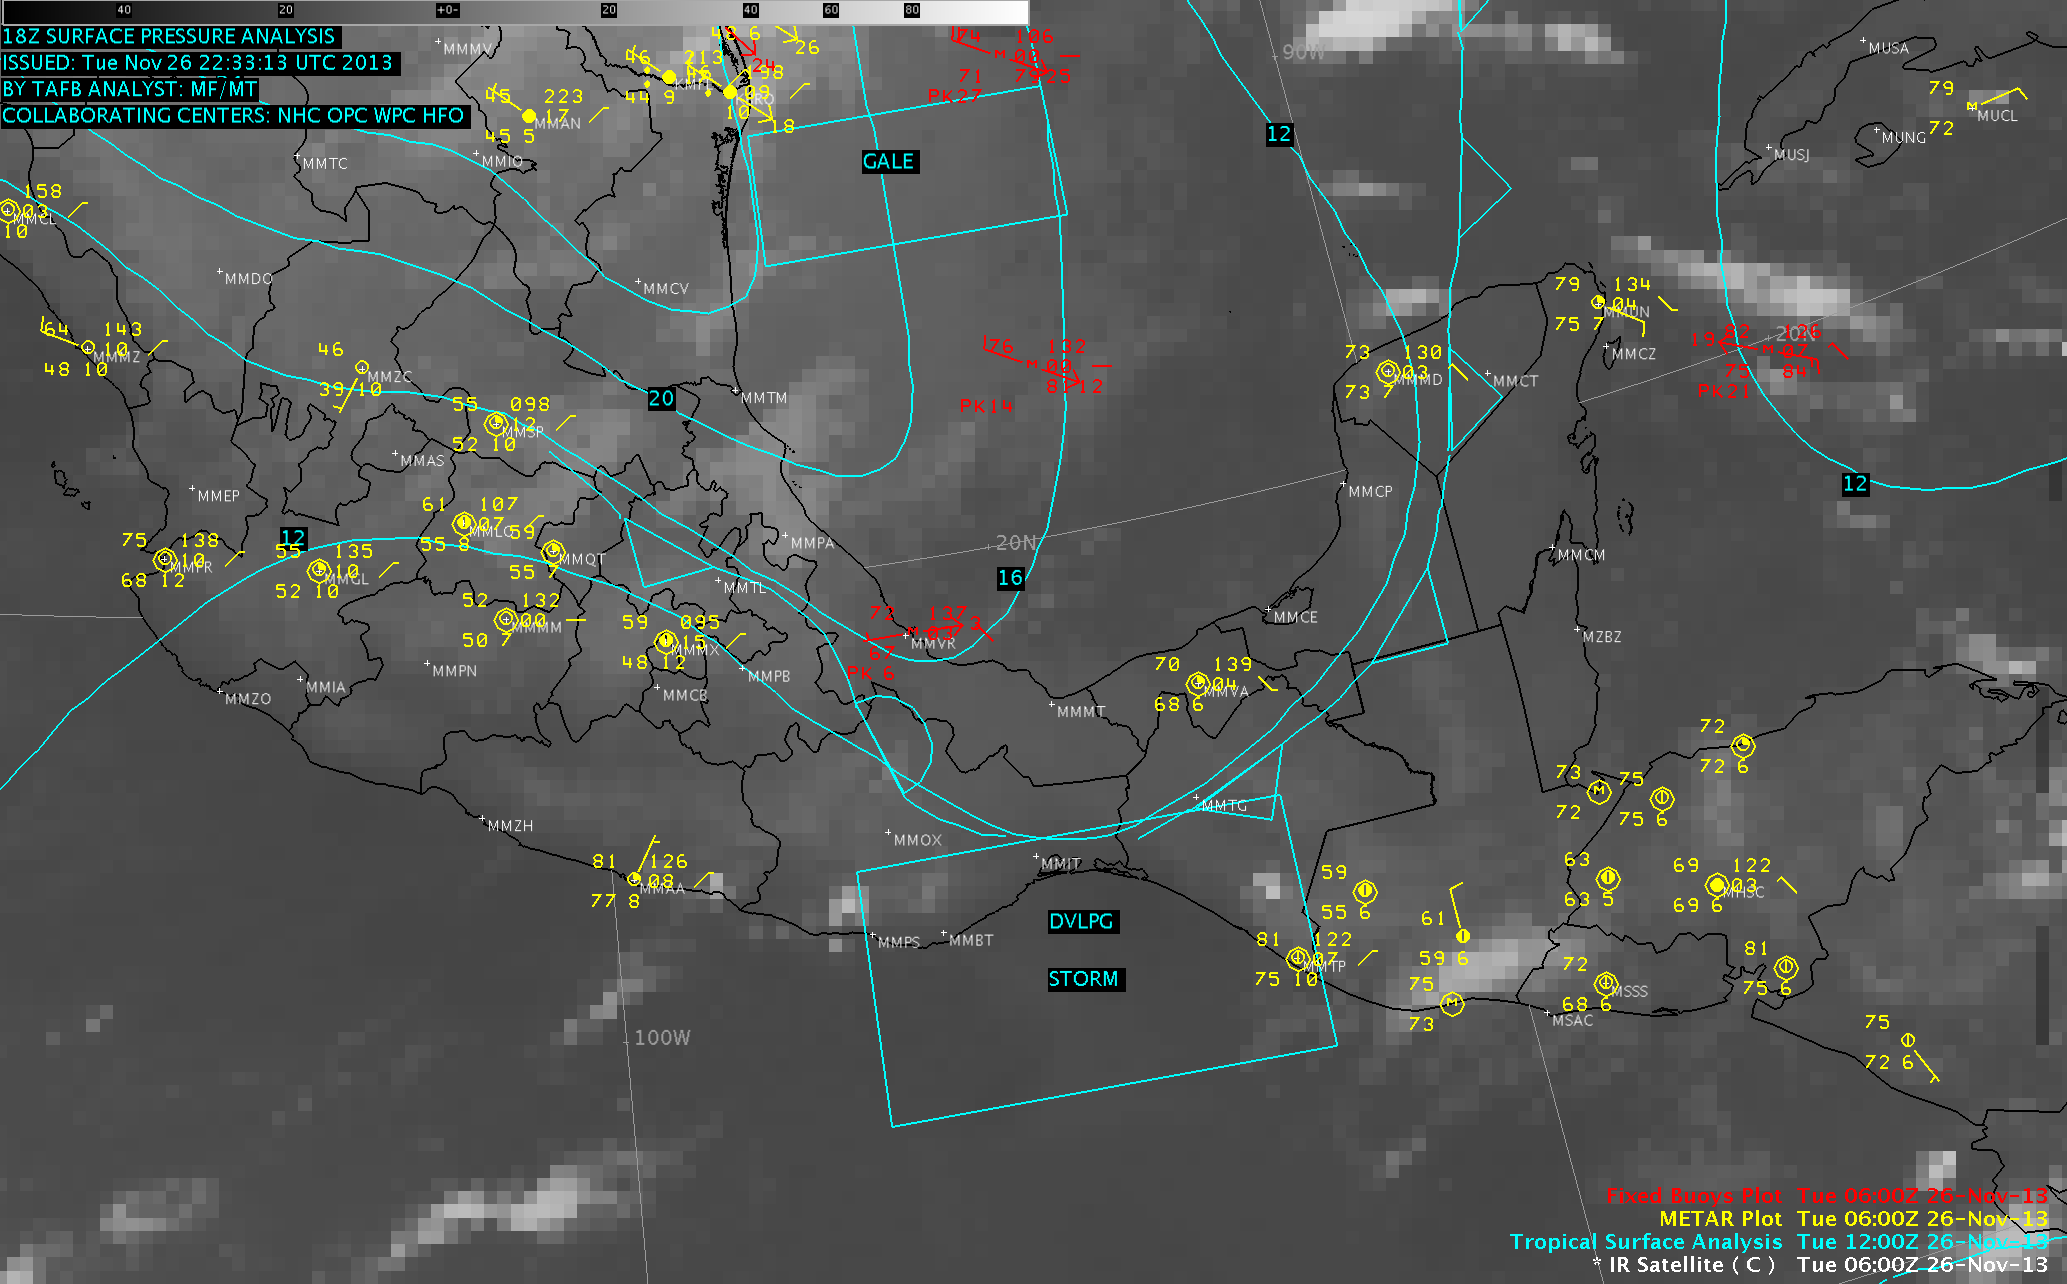 GOES-13 10.7 µm IR images, with surface and buoy reports and tropical surface analysis (click to play animation)